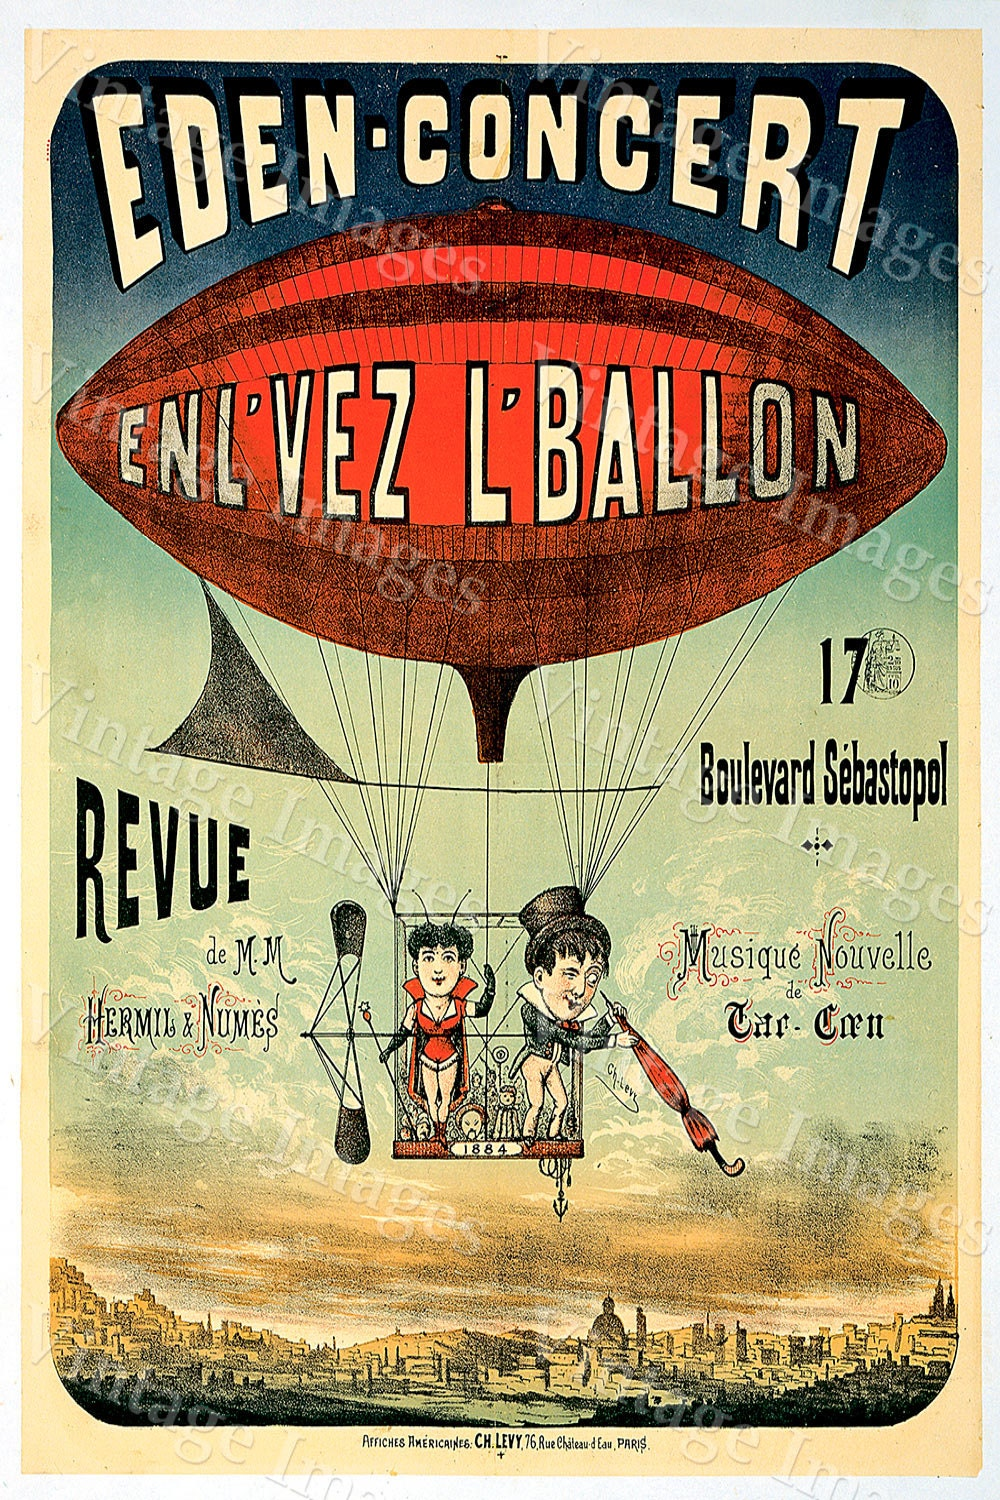 Vintage Poster 1884 French Hot Air Balloon Poster Eden Concert ...